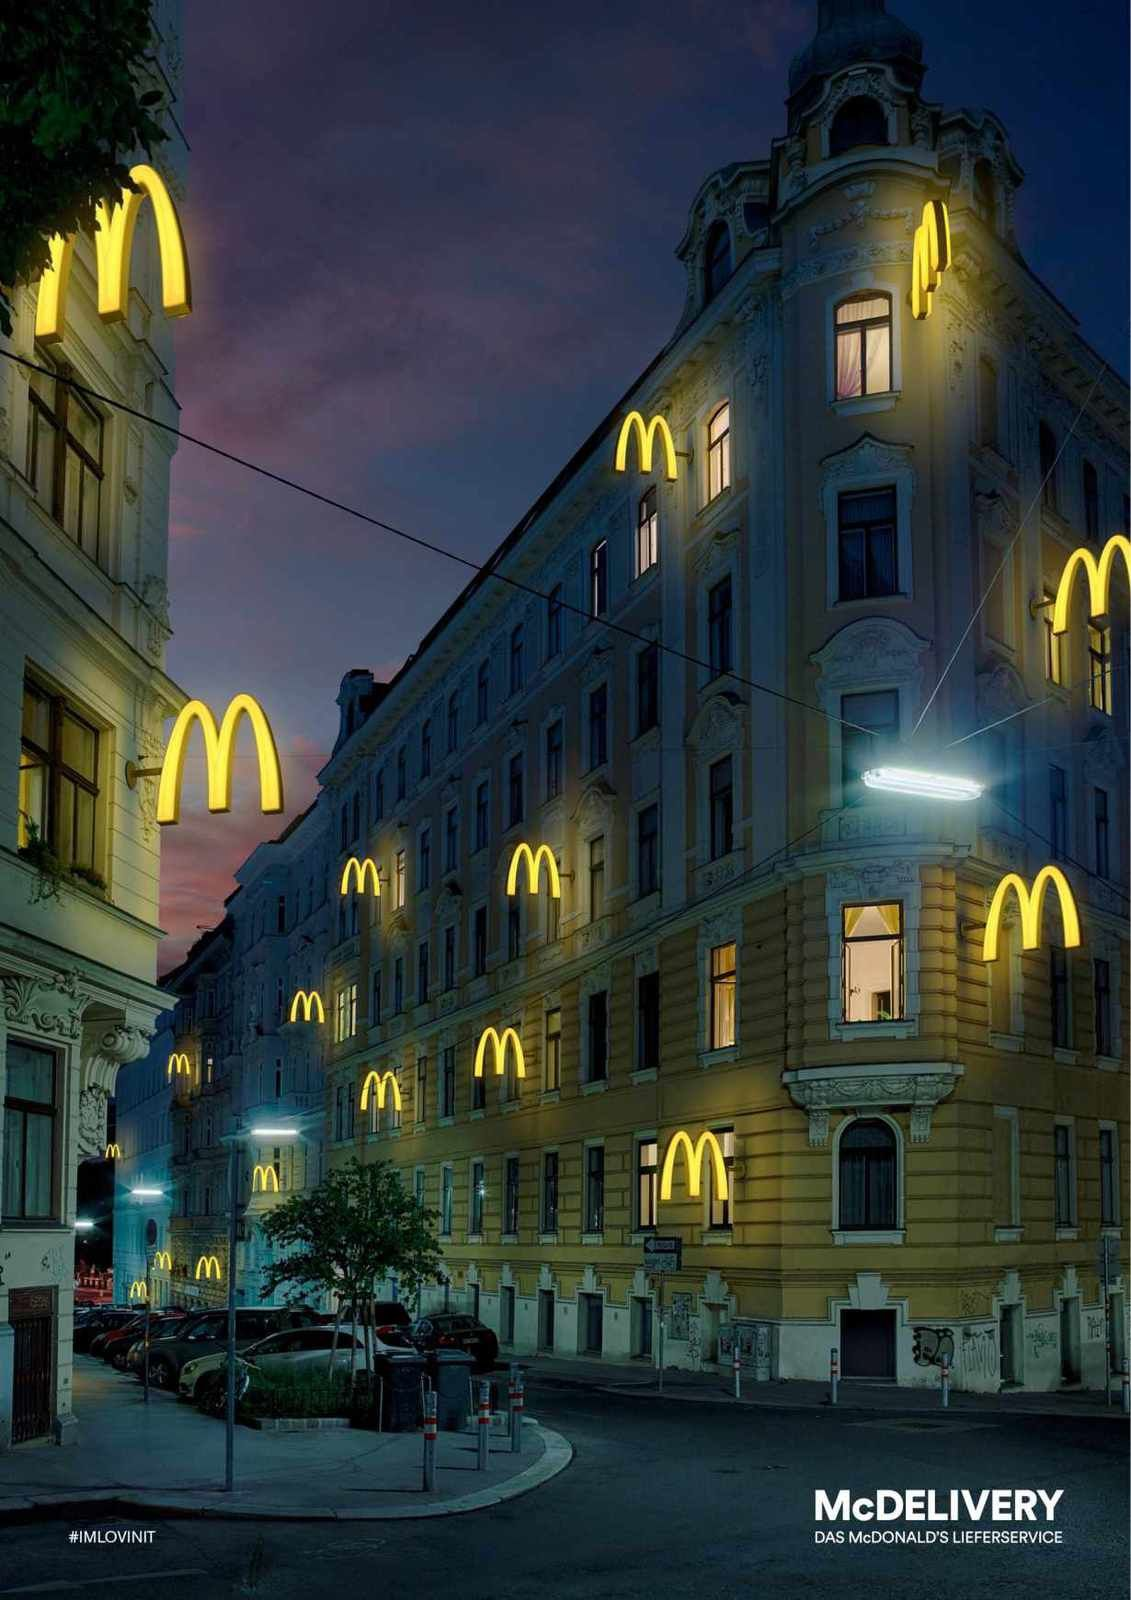 McDelivery (McDonald's) | Agence : DDB, Vienne, Autriche (octobre 2015)